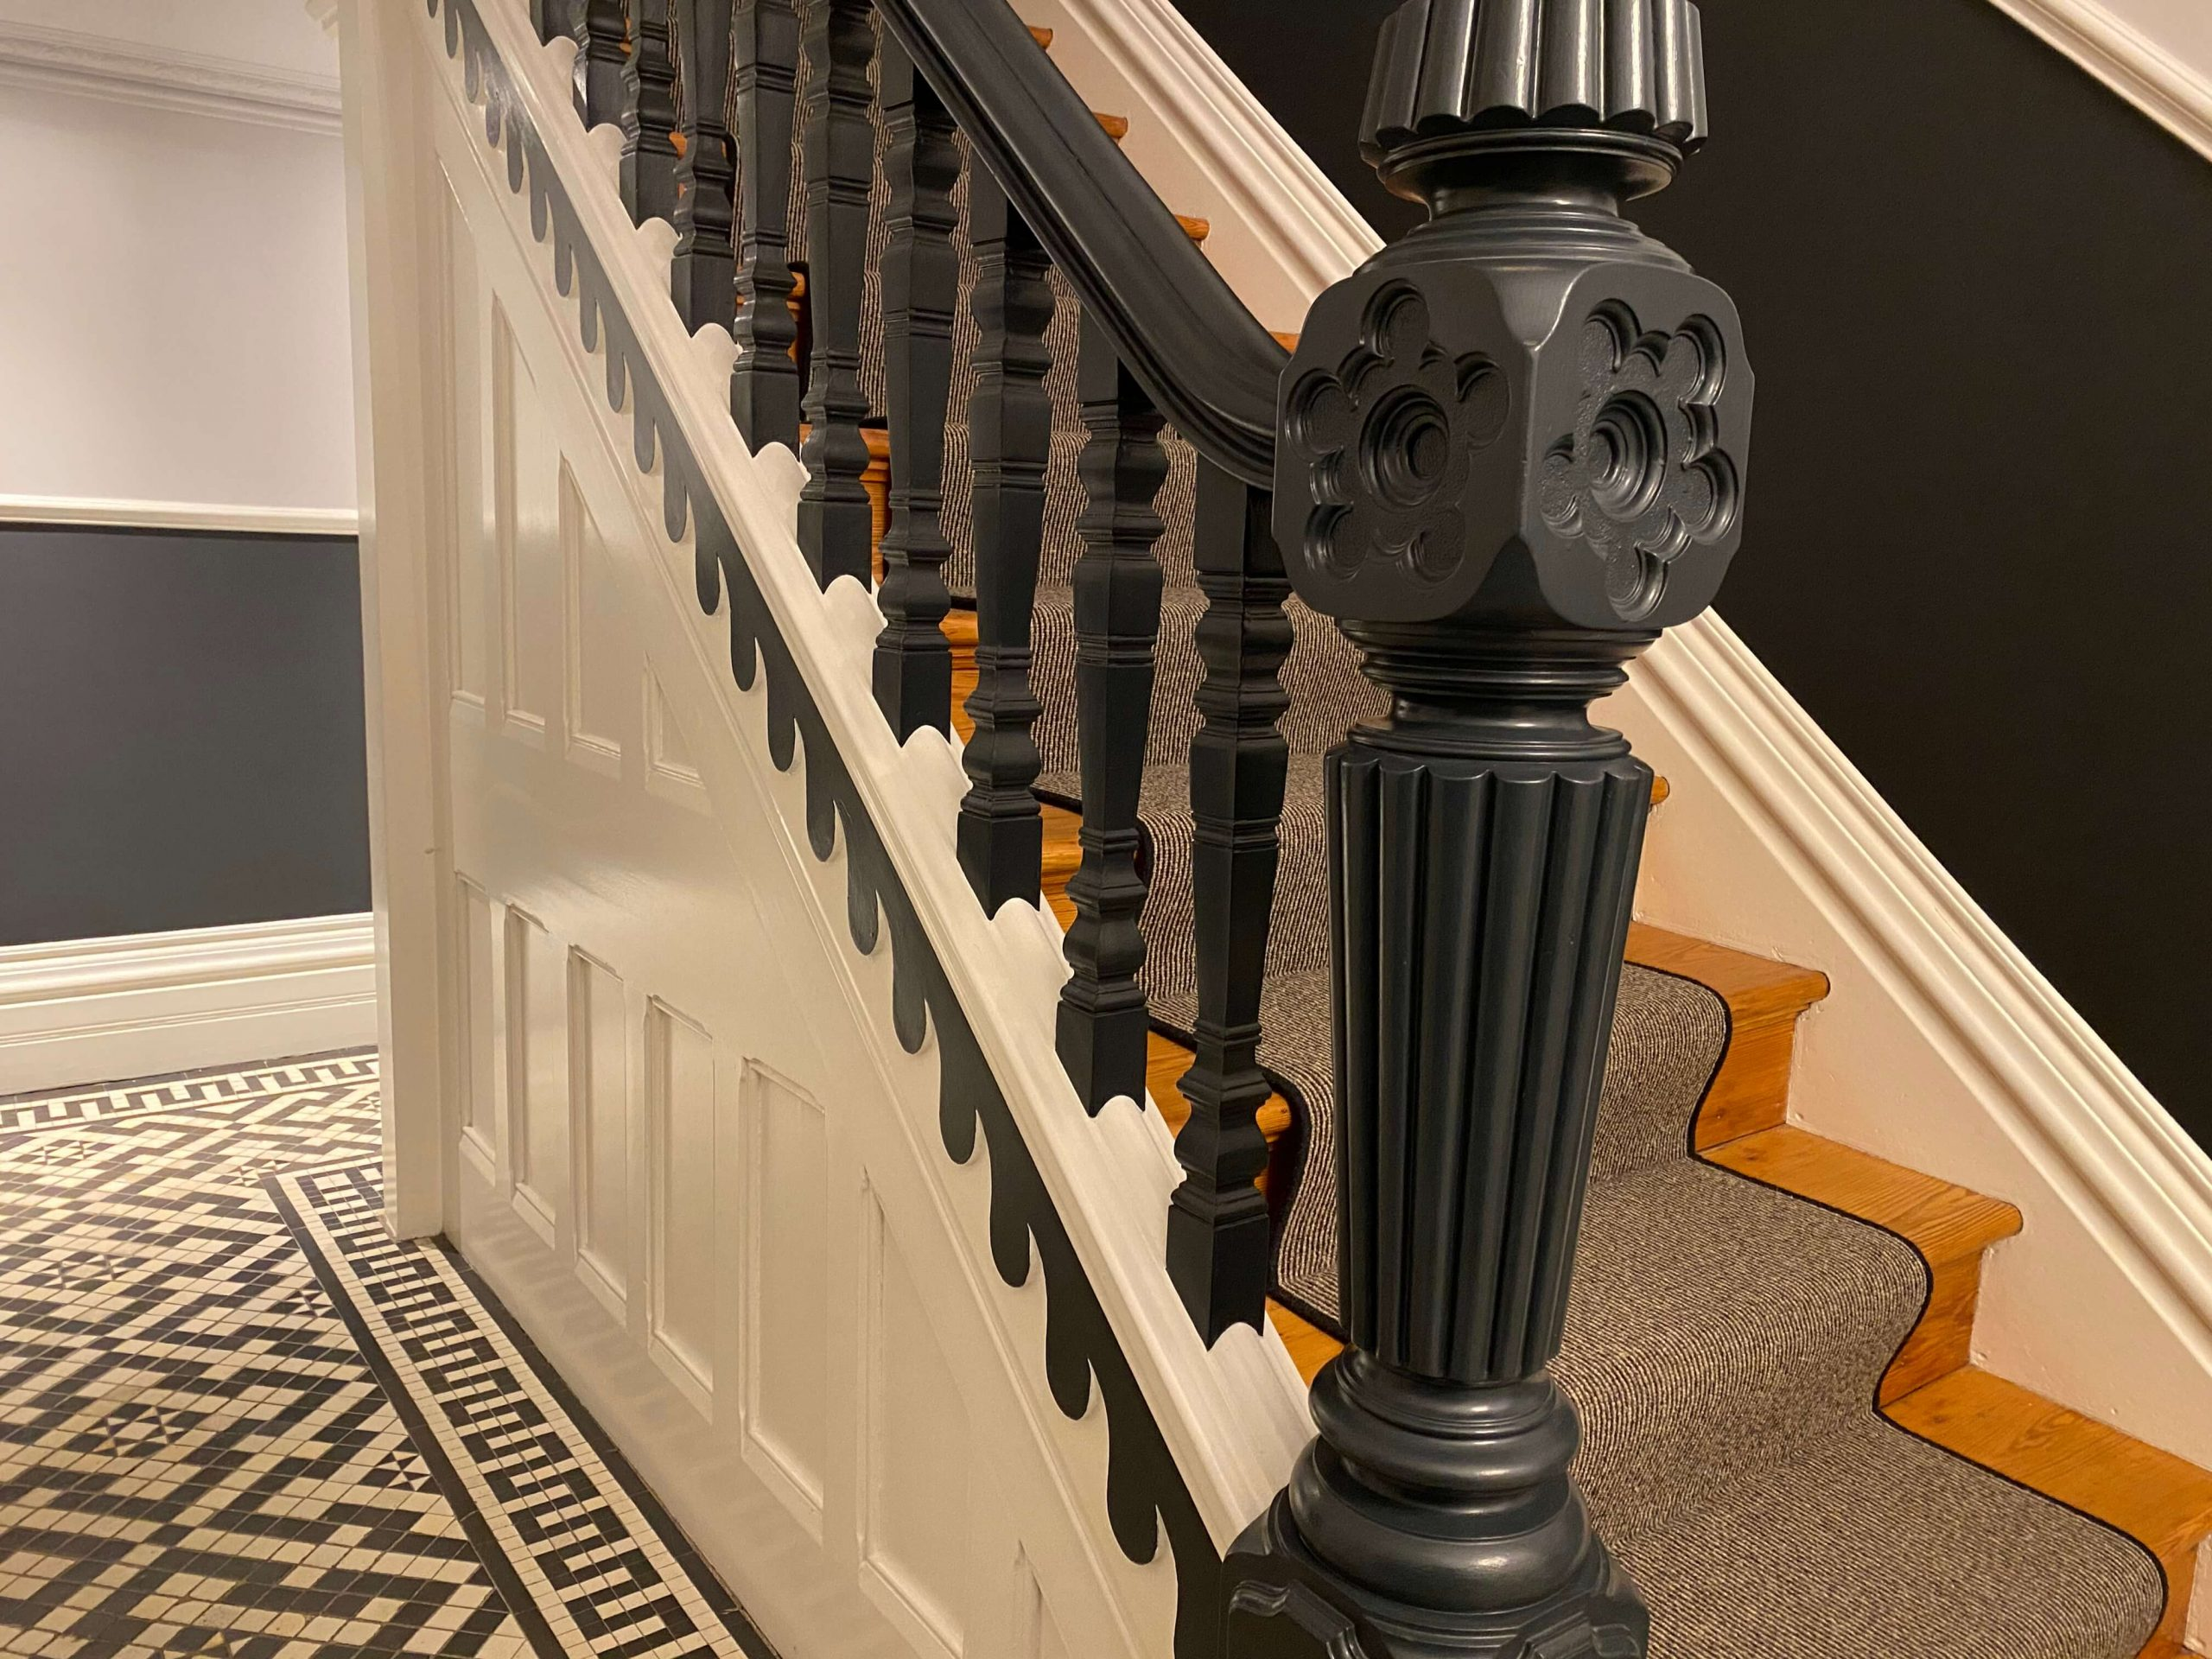 8. Handrail, Spindles & Newel post 2